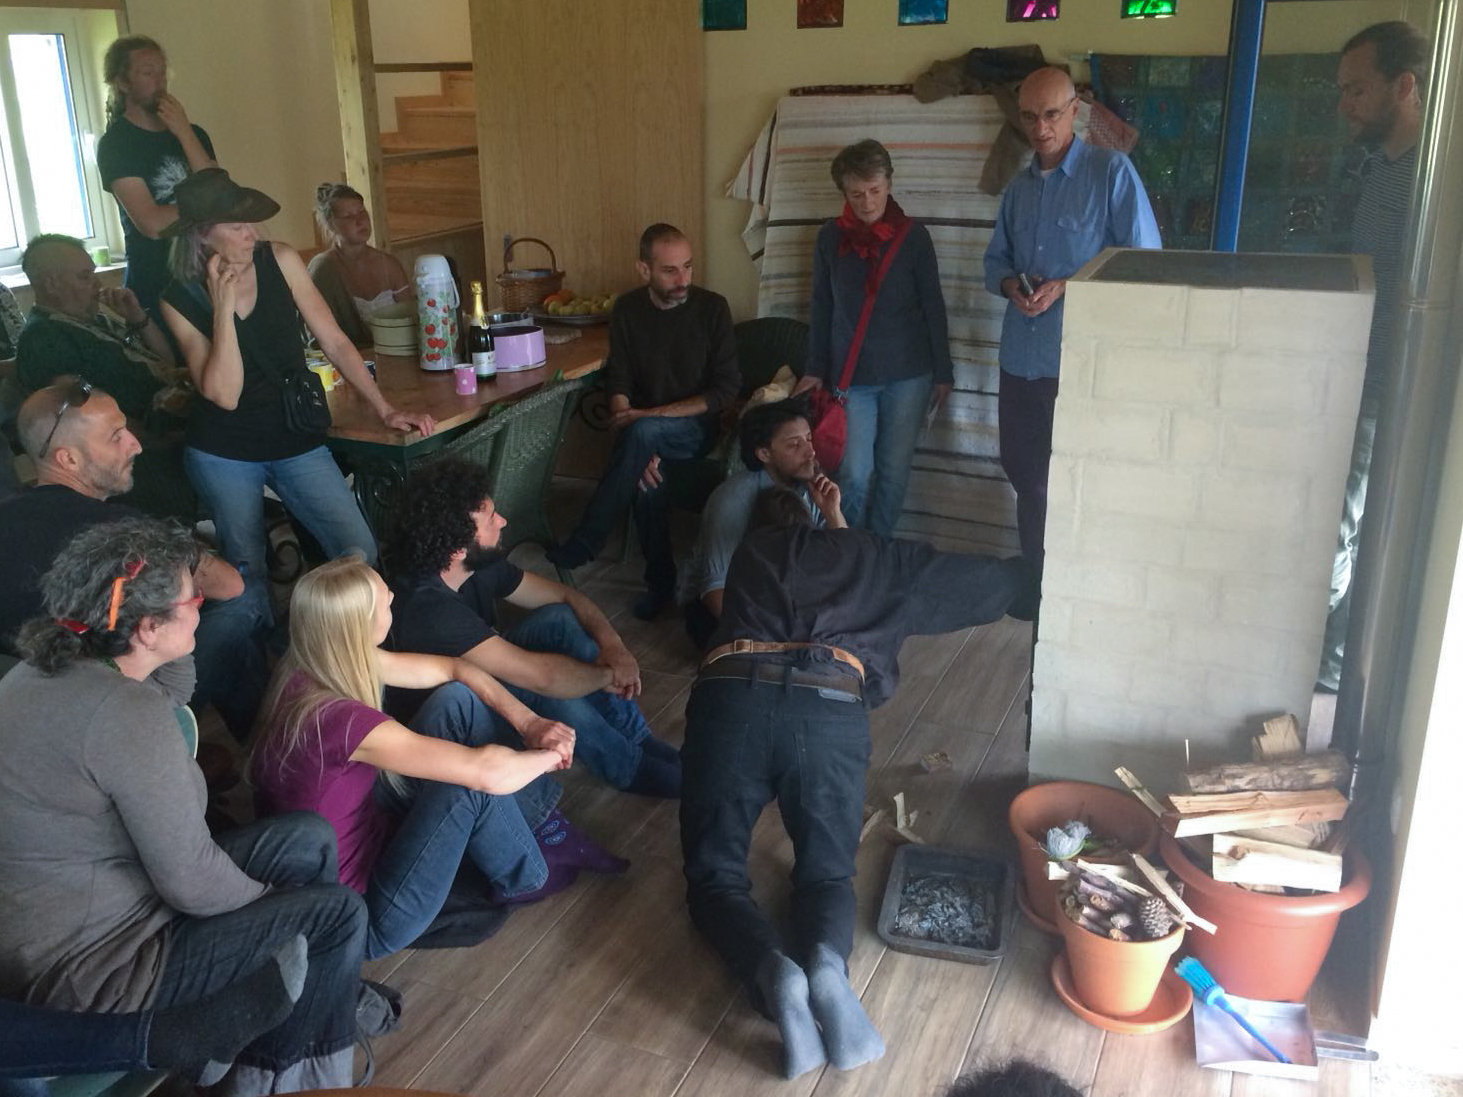 Explaining the workings of the Batch Rocket Stove